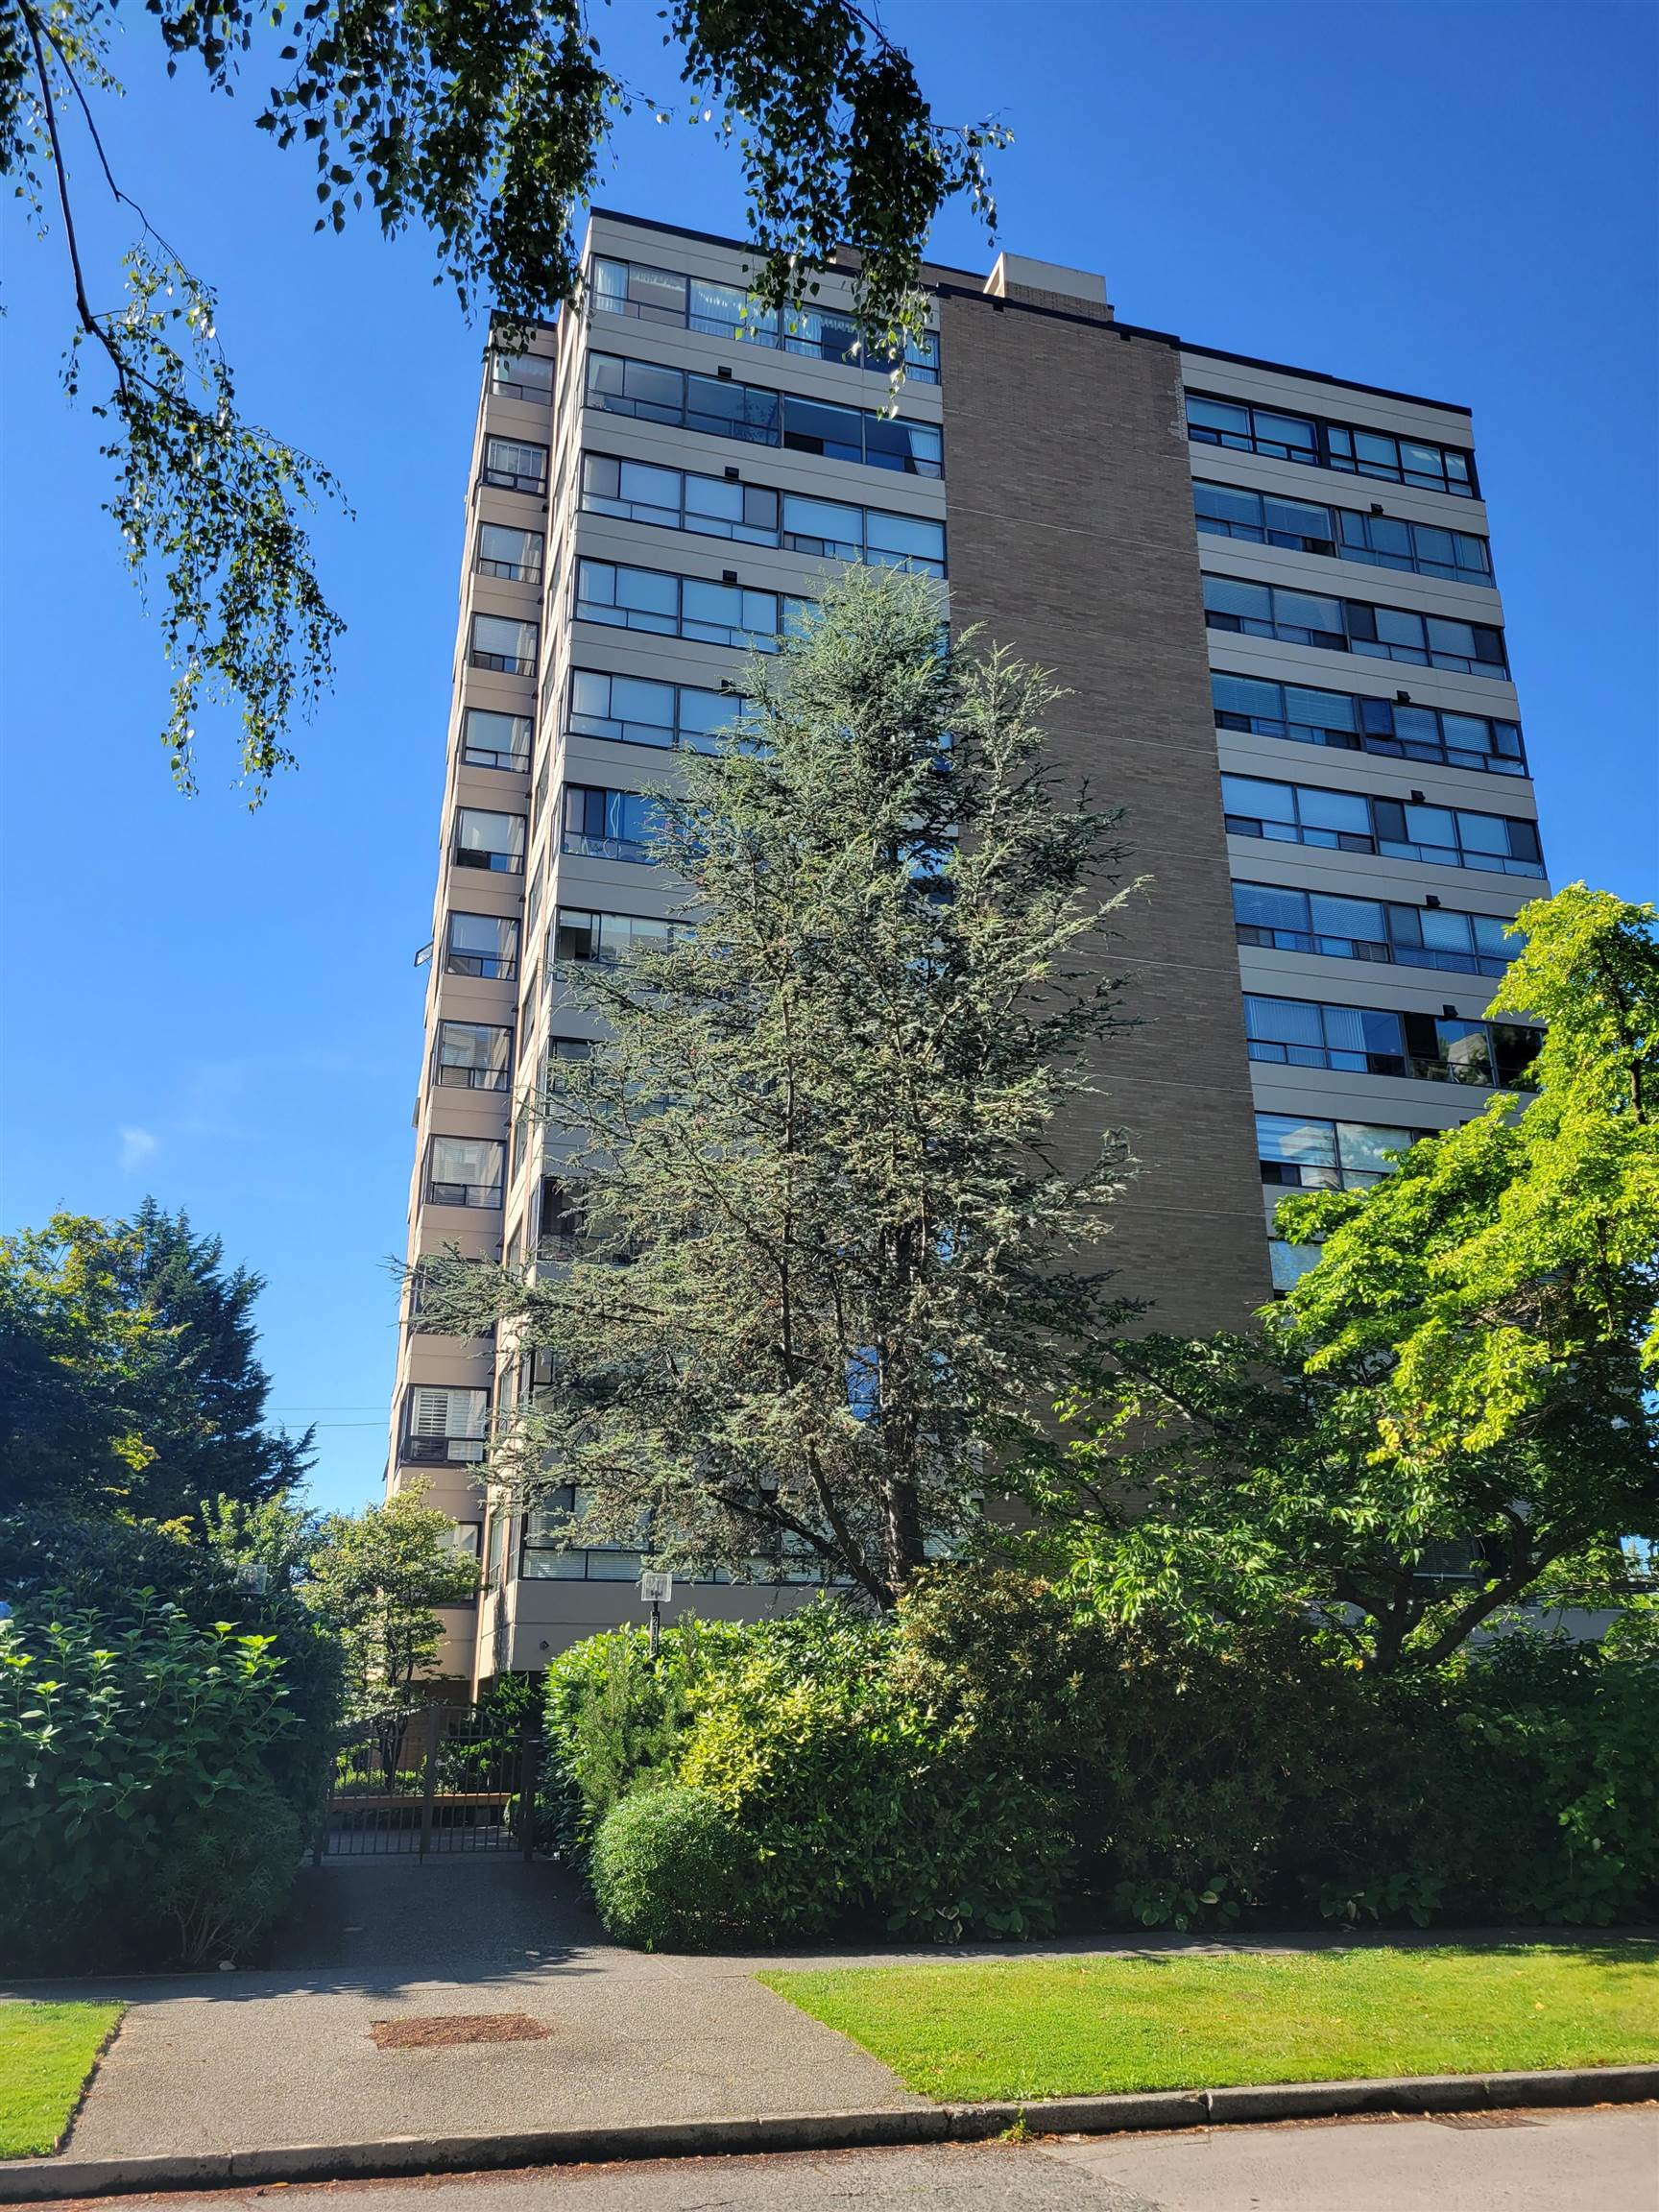 """Located in the most desirable Kerrisdale neighbourhood.  """"Wedgewood"""" is known for the spacious floor plan, designed to accommodate house-size furniture.  Great for downsize.  Only 2 units per floor.  This unit was updated with a newer kitchen, bathrooms and flooring.  Ample closets & storage.  Well maintained building with new roof, elevator modernized, re-piping, exterior wall re-painted.  Beautiful Garden for your quiet and private enjoyment.  Walking distance to Community Centre, library, schools, bus, shopping, restaurants, banks, etc. Virtual Tour:  https://youtu.be/LACWvuG1D0o"""